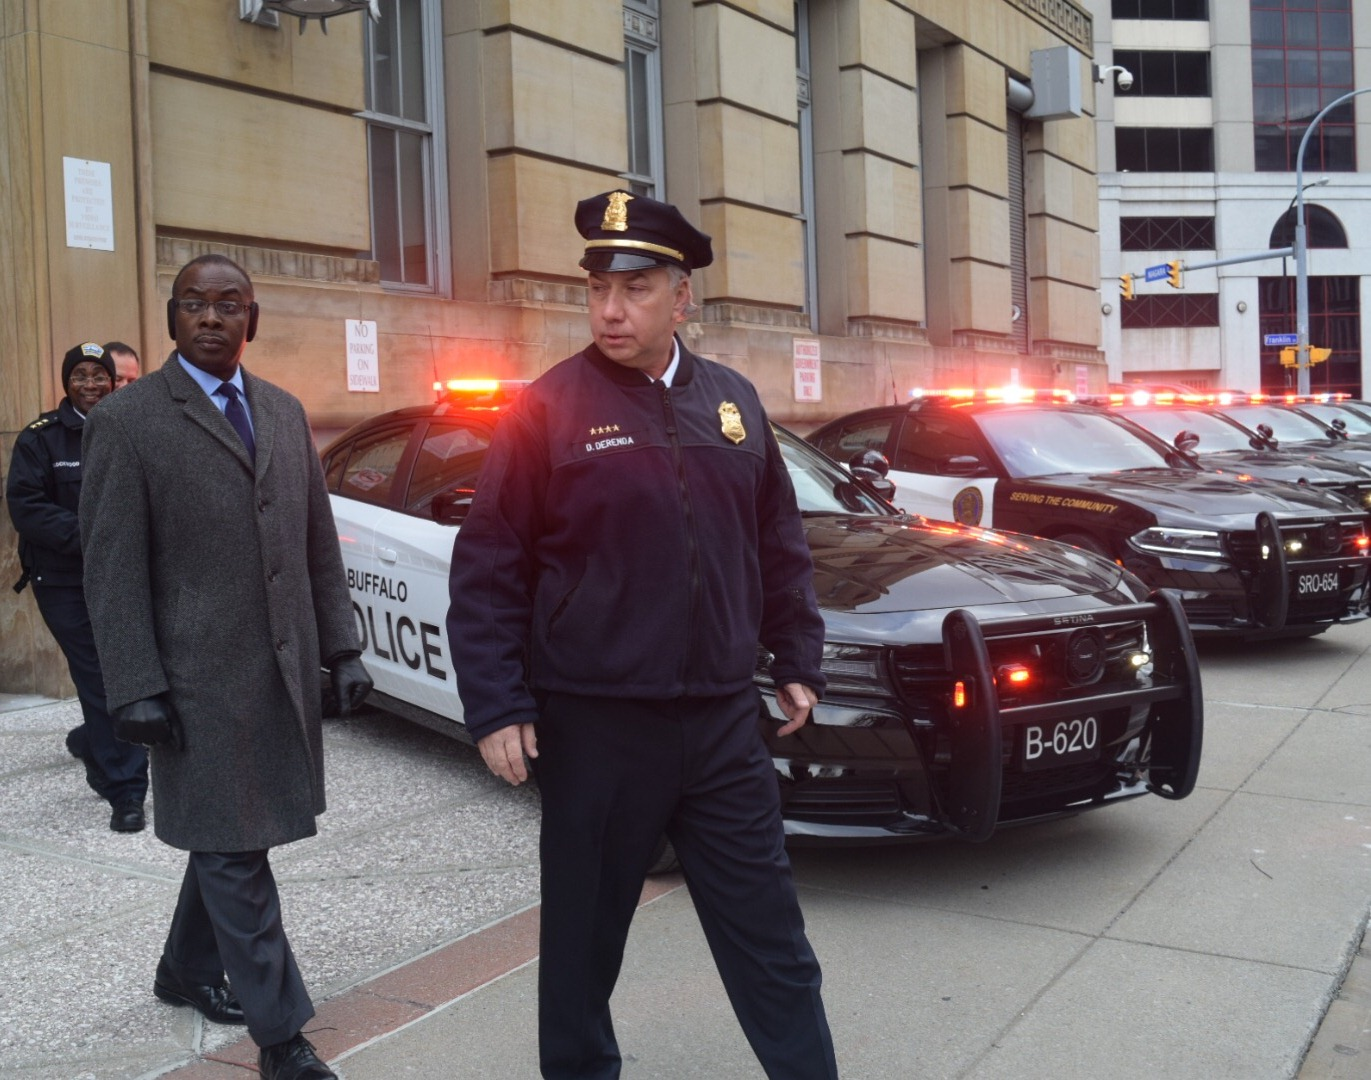 Buffalo PD Rolls Out Dodge Chargers